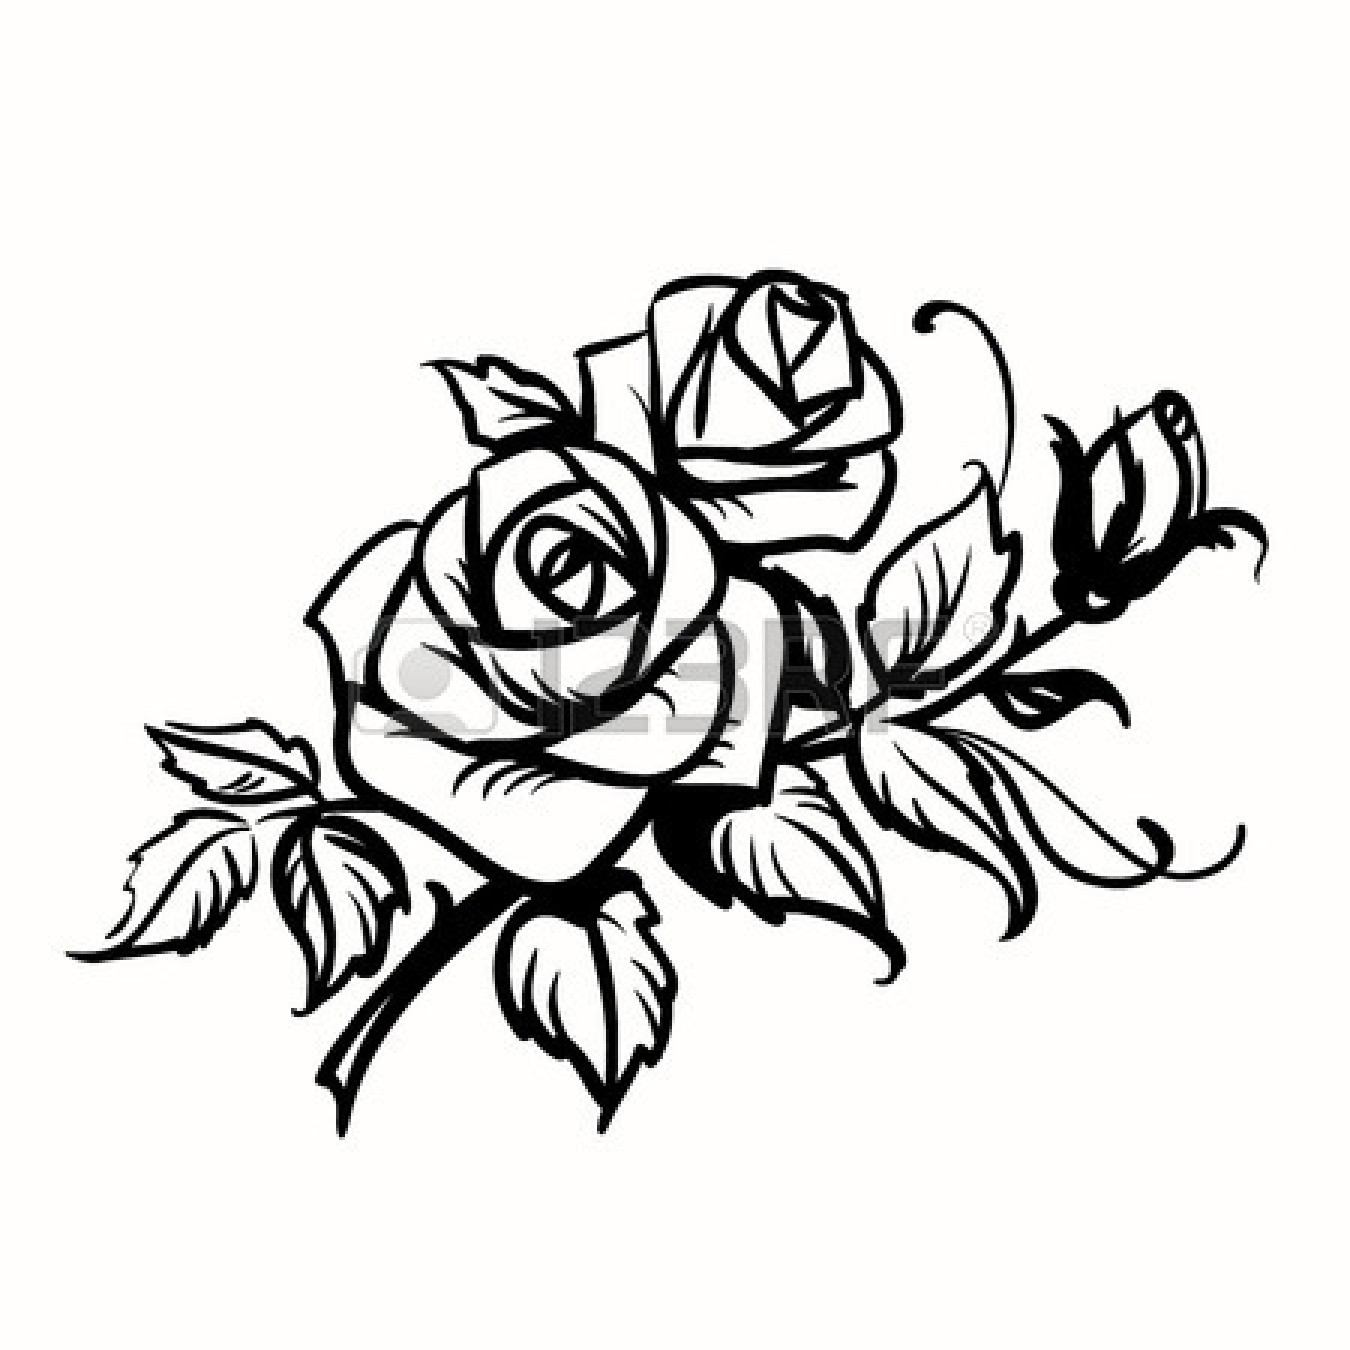 Free Rose Outlines, Download Free Clip Art, Free Clip Art on.